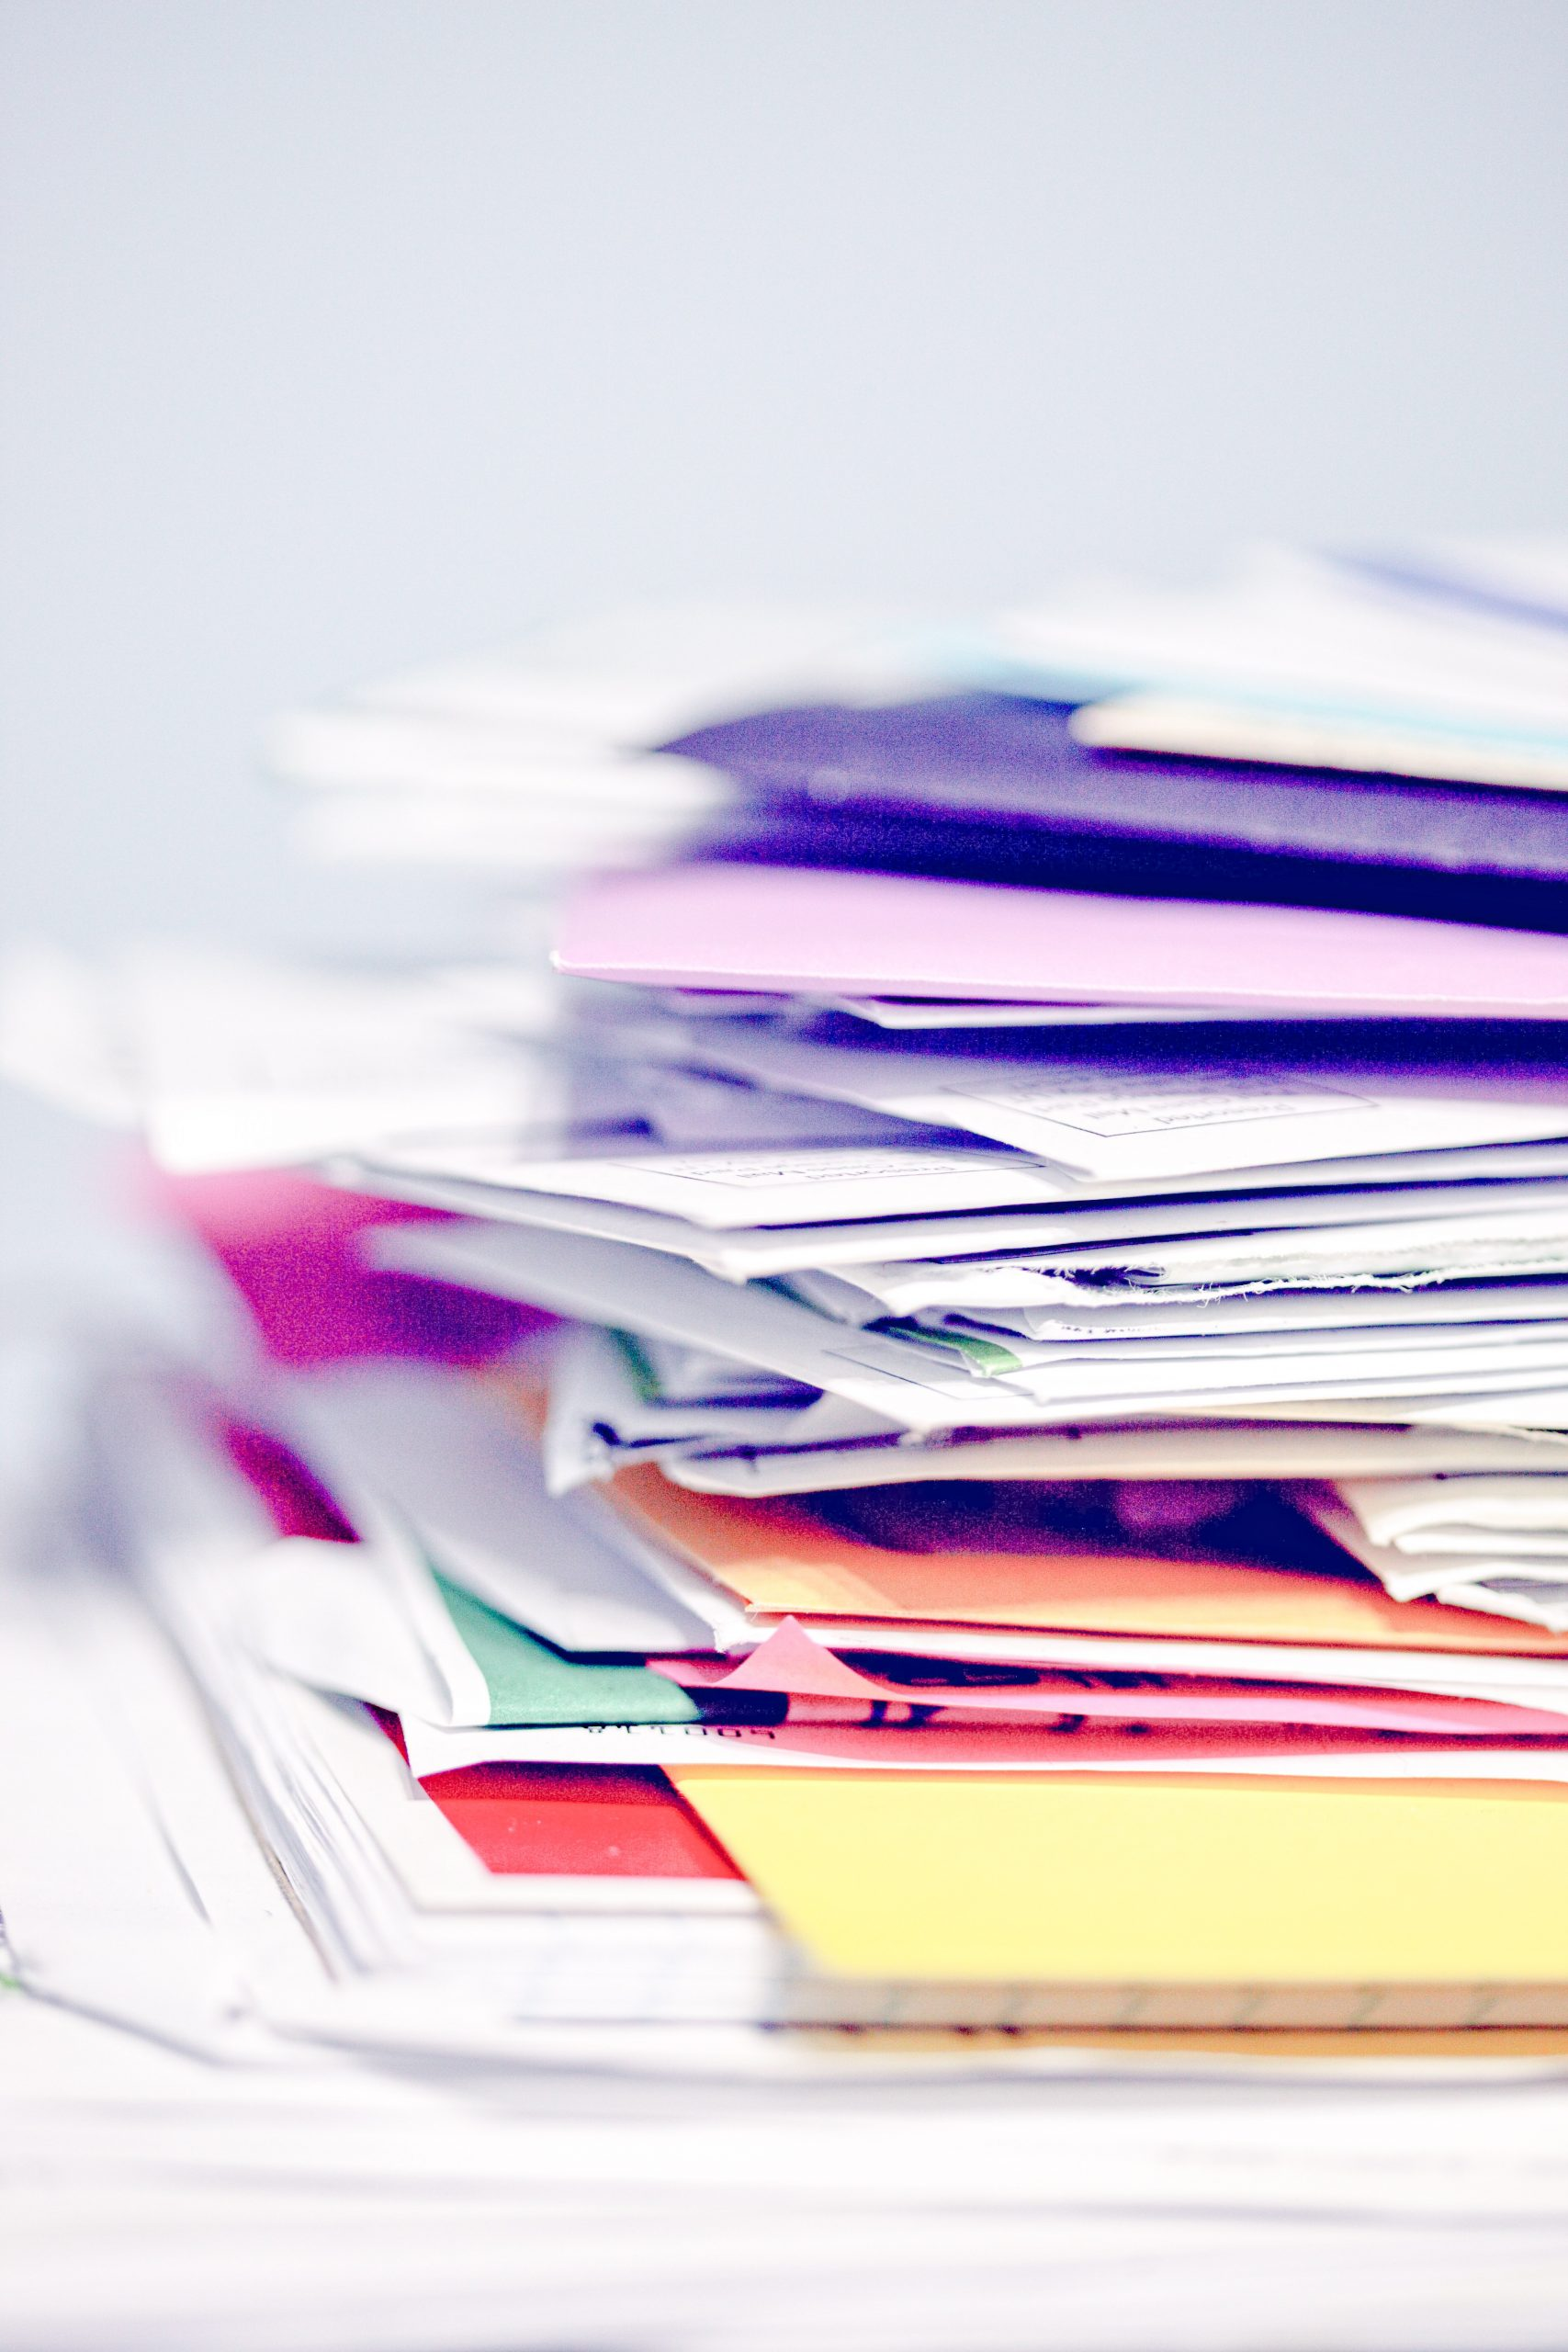 Things to do at home - sort out paperwork